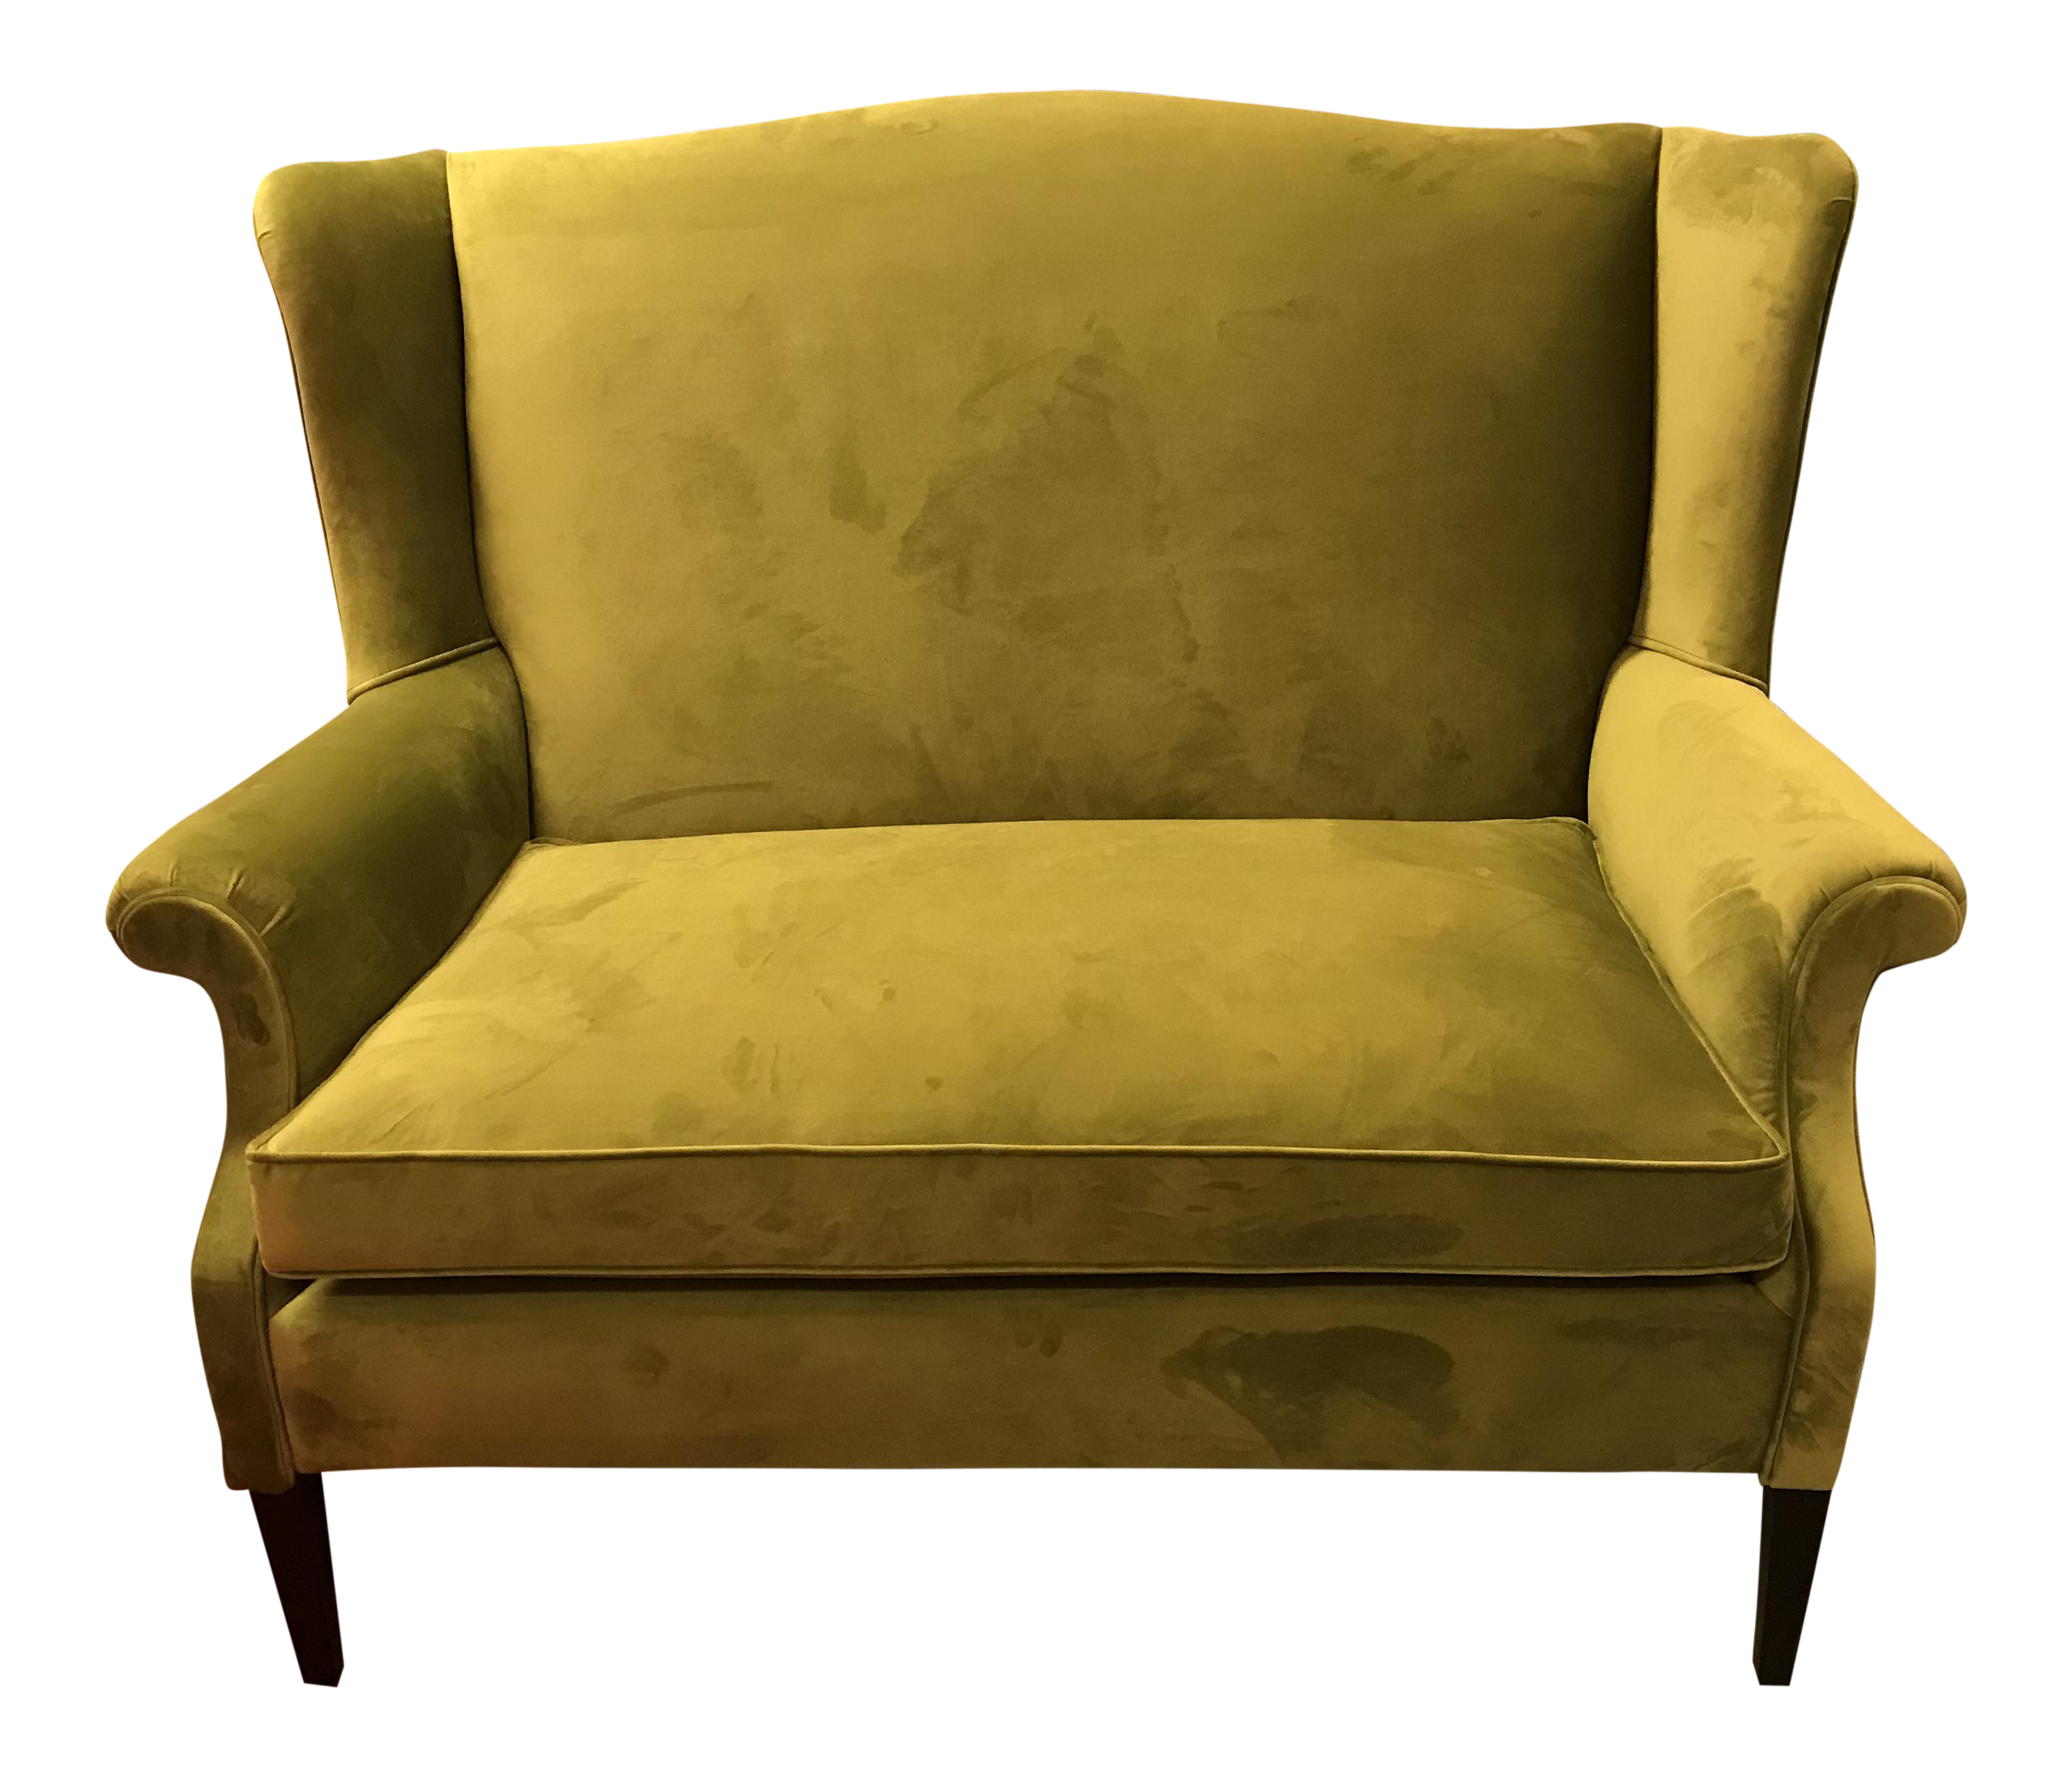 Superieur Mid Century Restored, Chartreuse Green Velvet, Wingback Sofa With A Single  Cushion